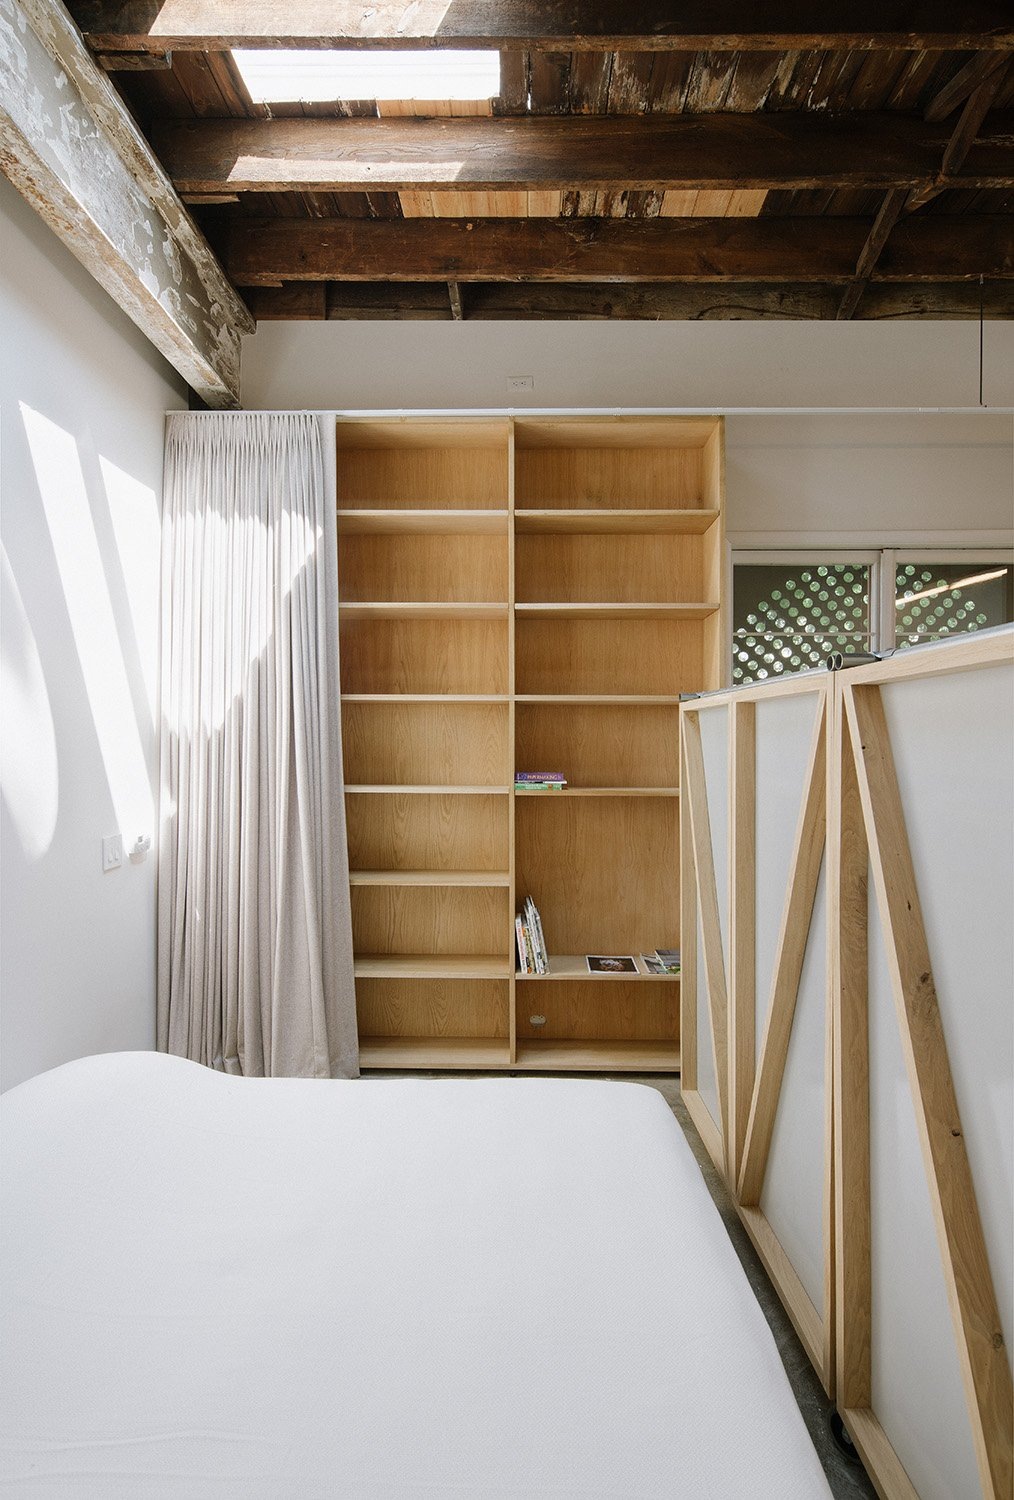 Photograph showing the bedroom partitioned off using two wardrobes on casters. All furniture for the project was designed to be able to accommodate the occupants' basic needs, and also be able to move to o Florian Holzherr